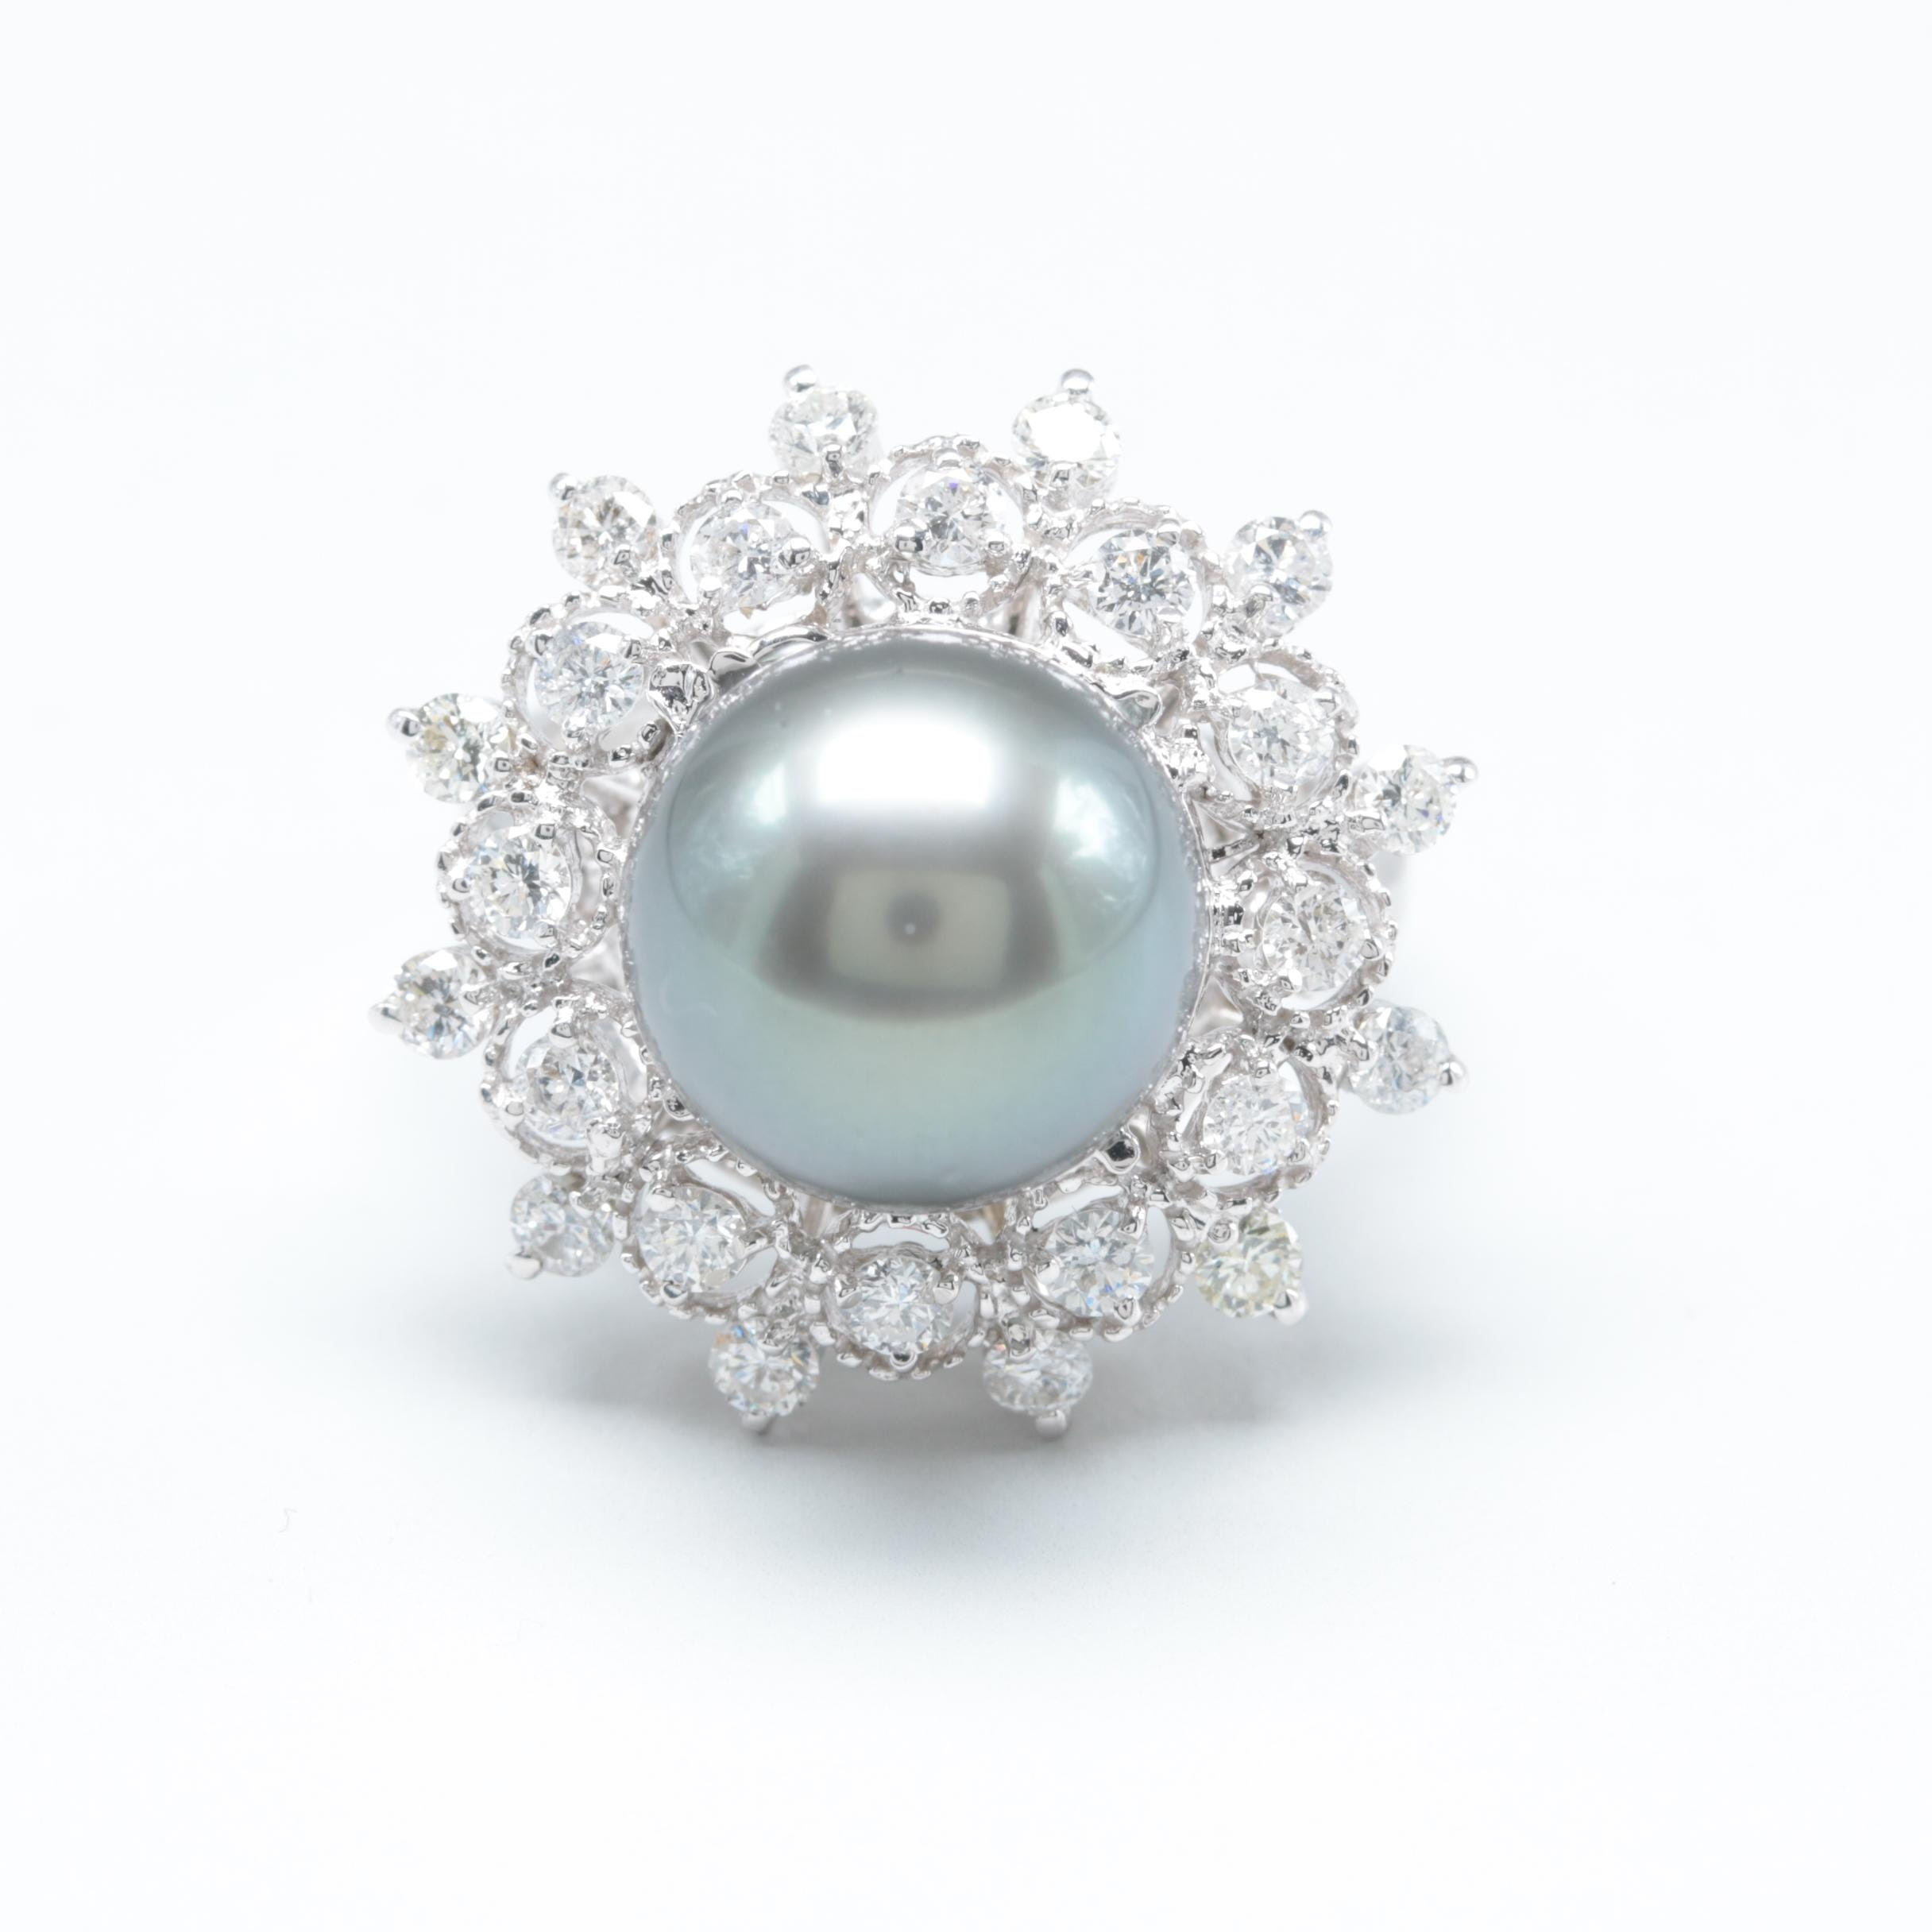 14K White Gold Cultured Pearl and 1.14 CTW Diamond Ring